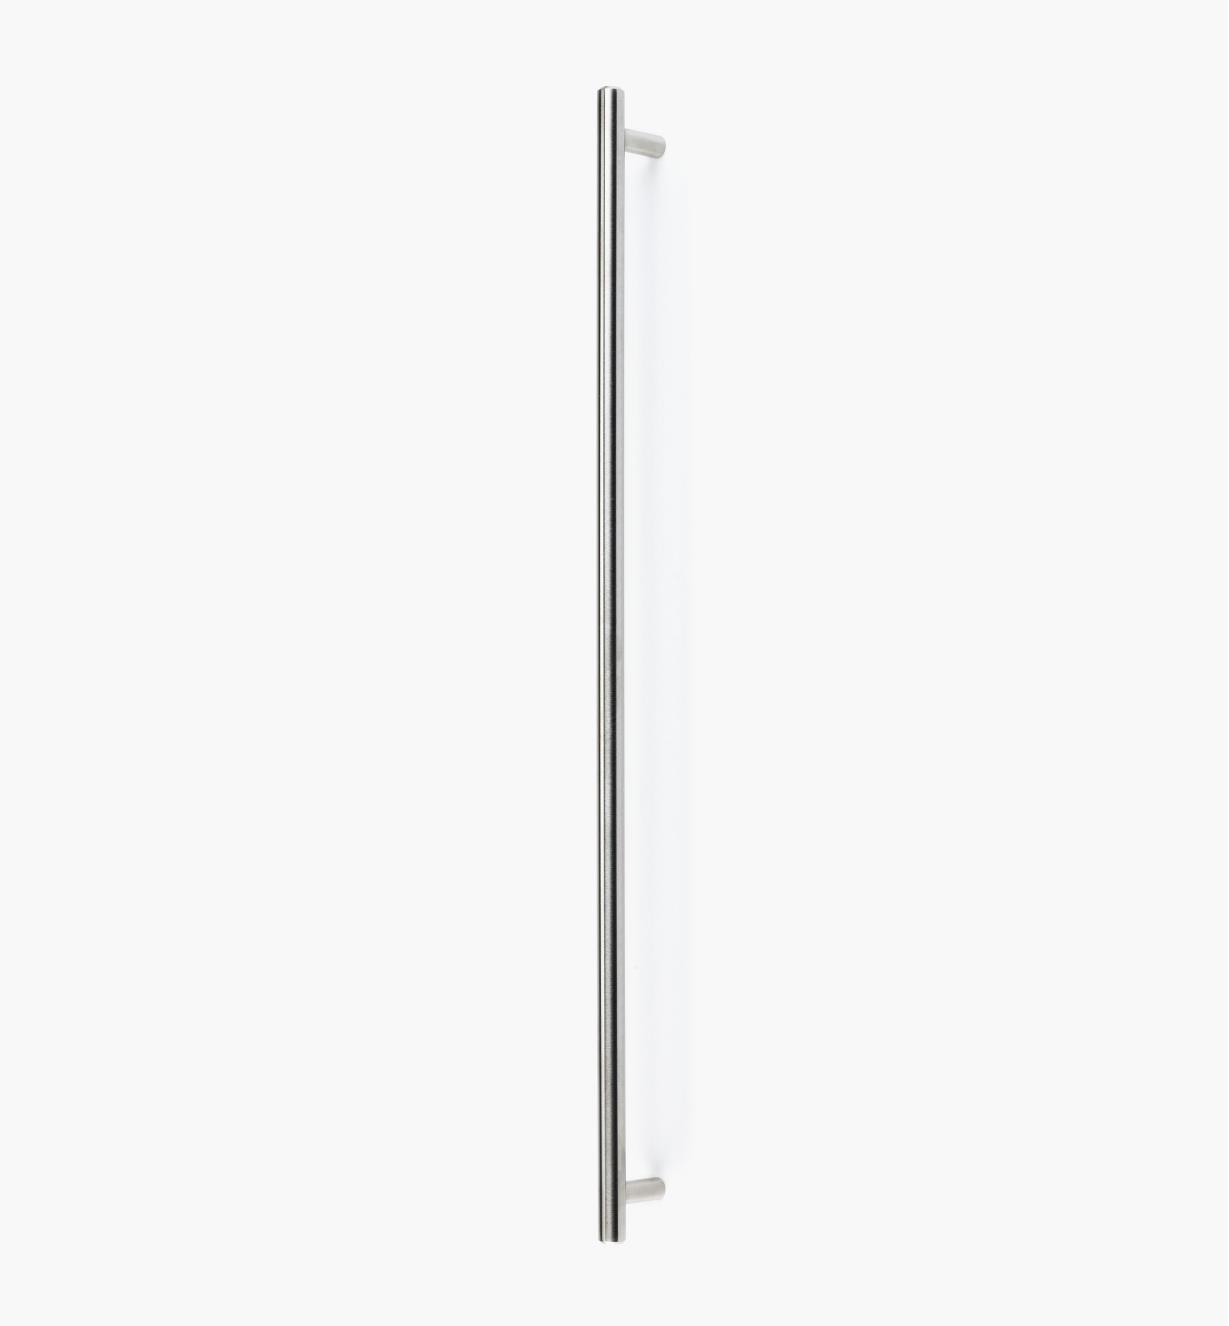 "01W8316 - 488mm (19 1/4"") Stainless-Steel Bar Handle"